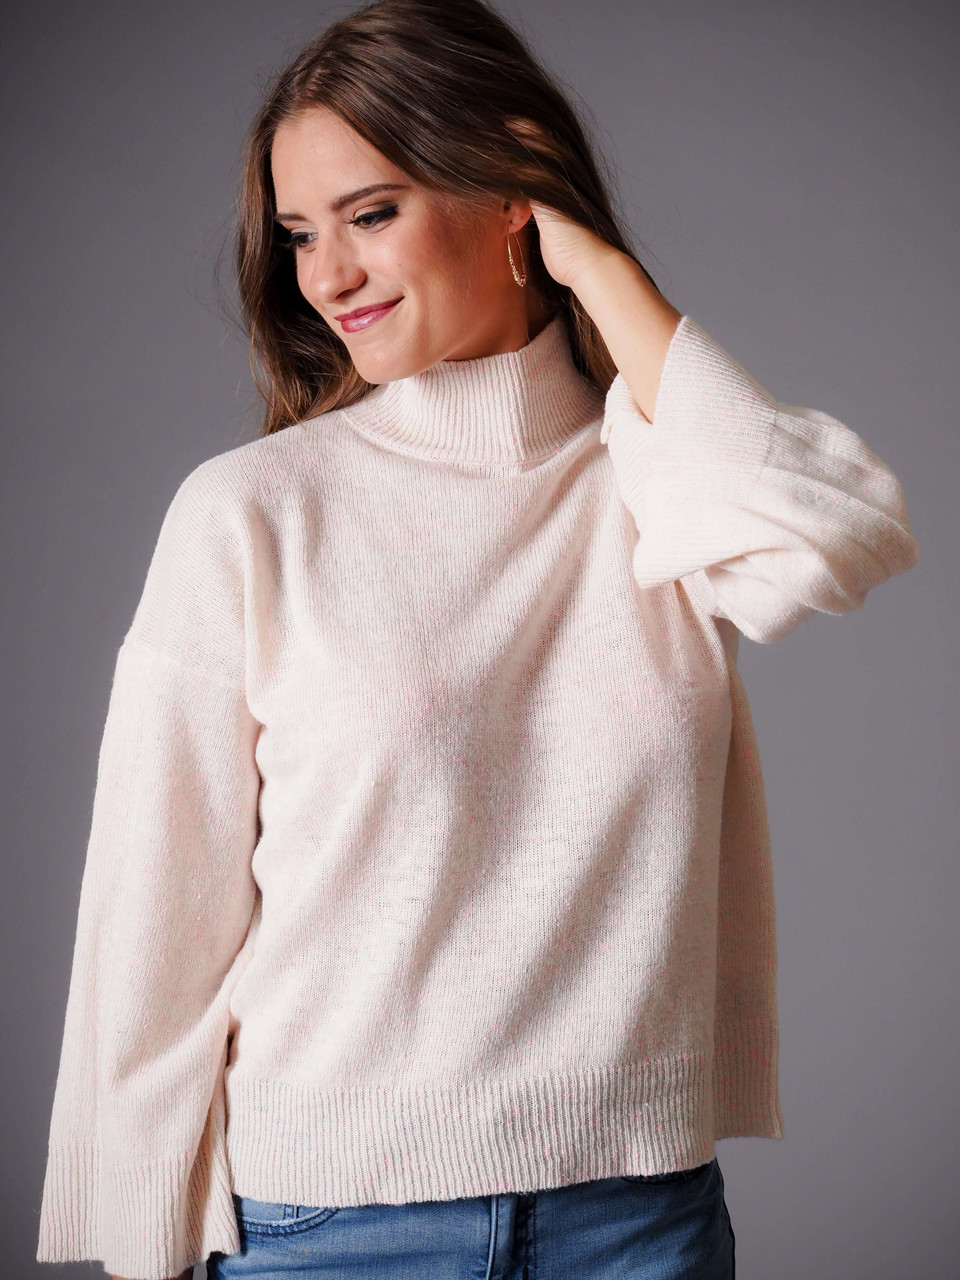 cream mock turtleneck sweater with pink confetti